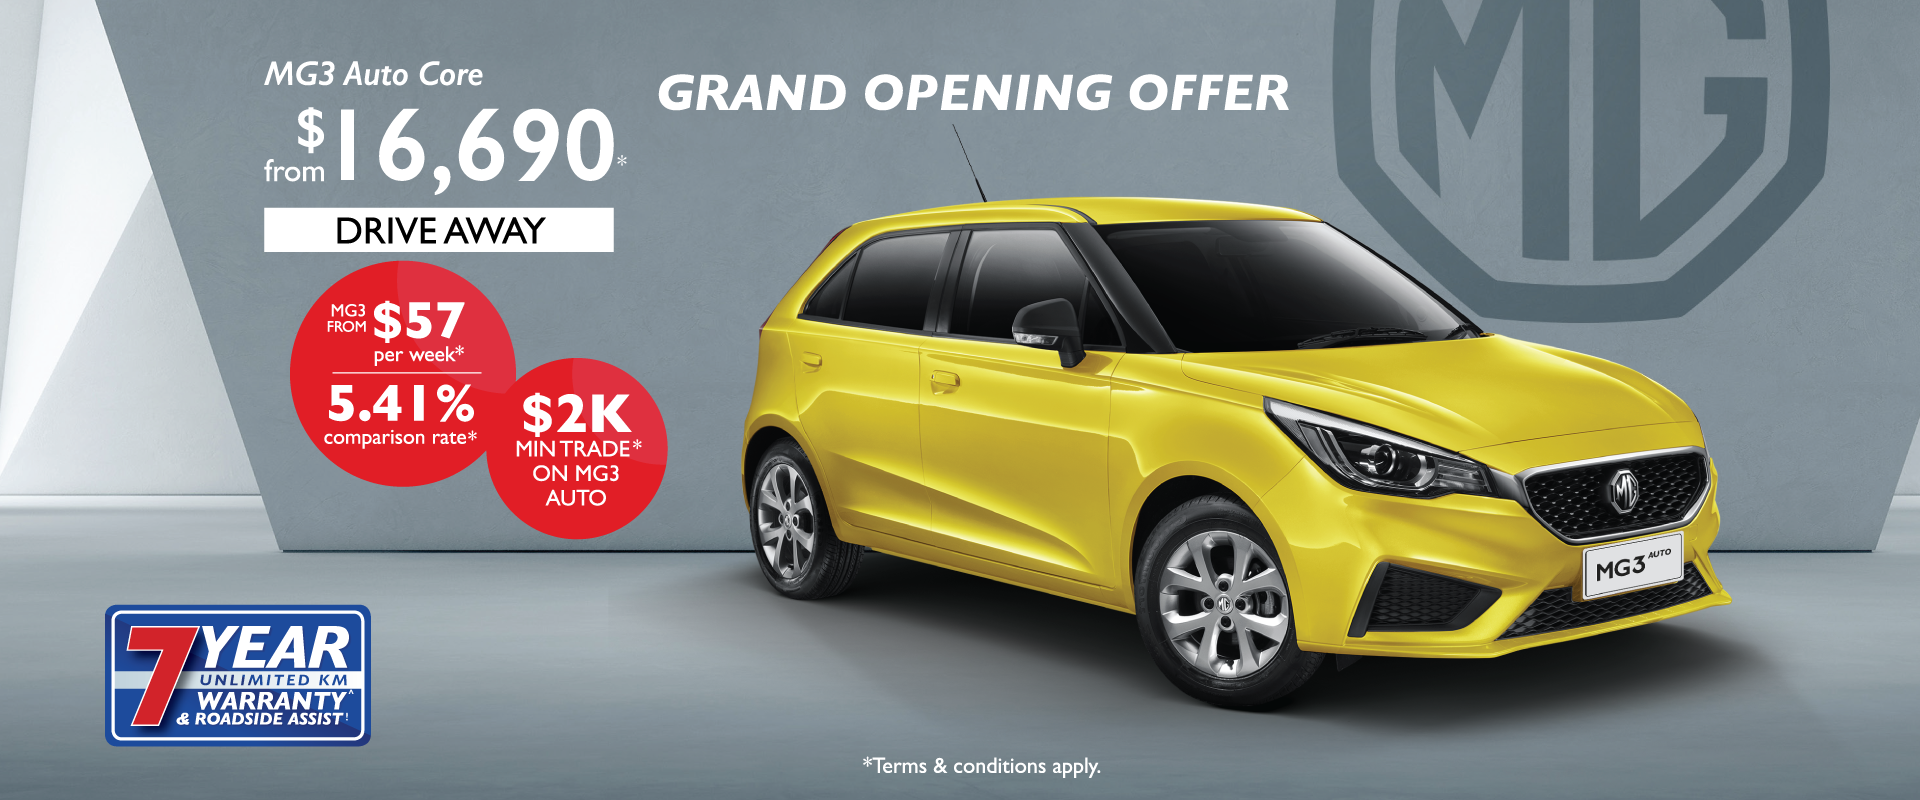 MG3 Grand Opening Finance Offer